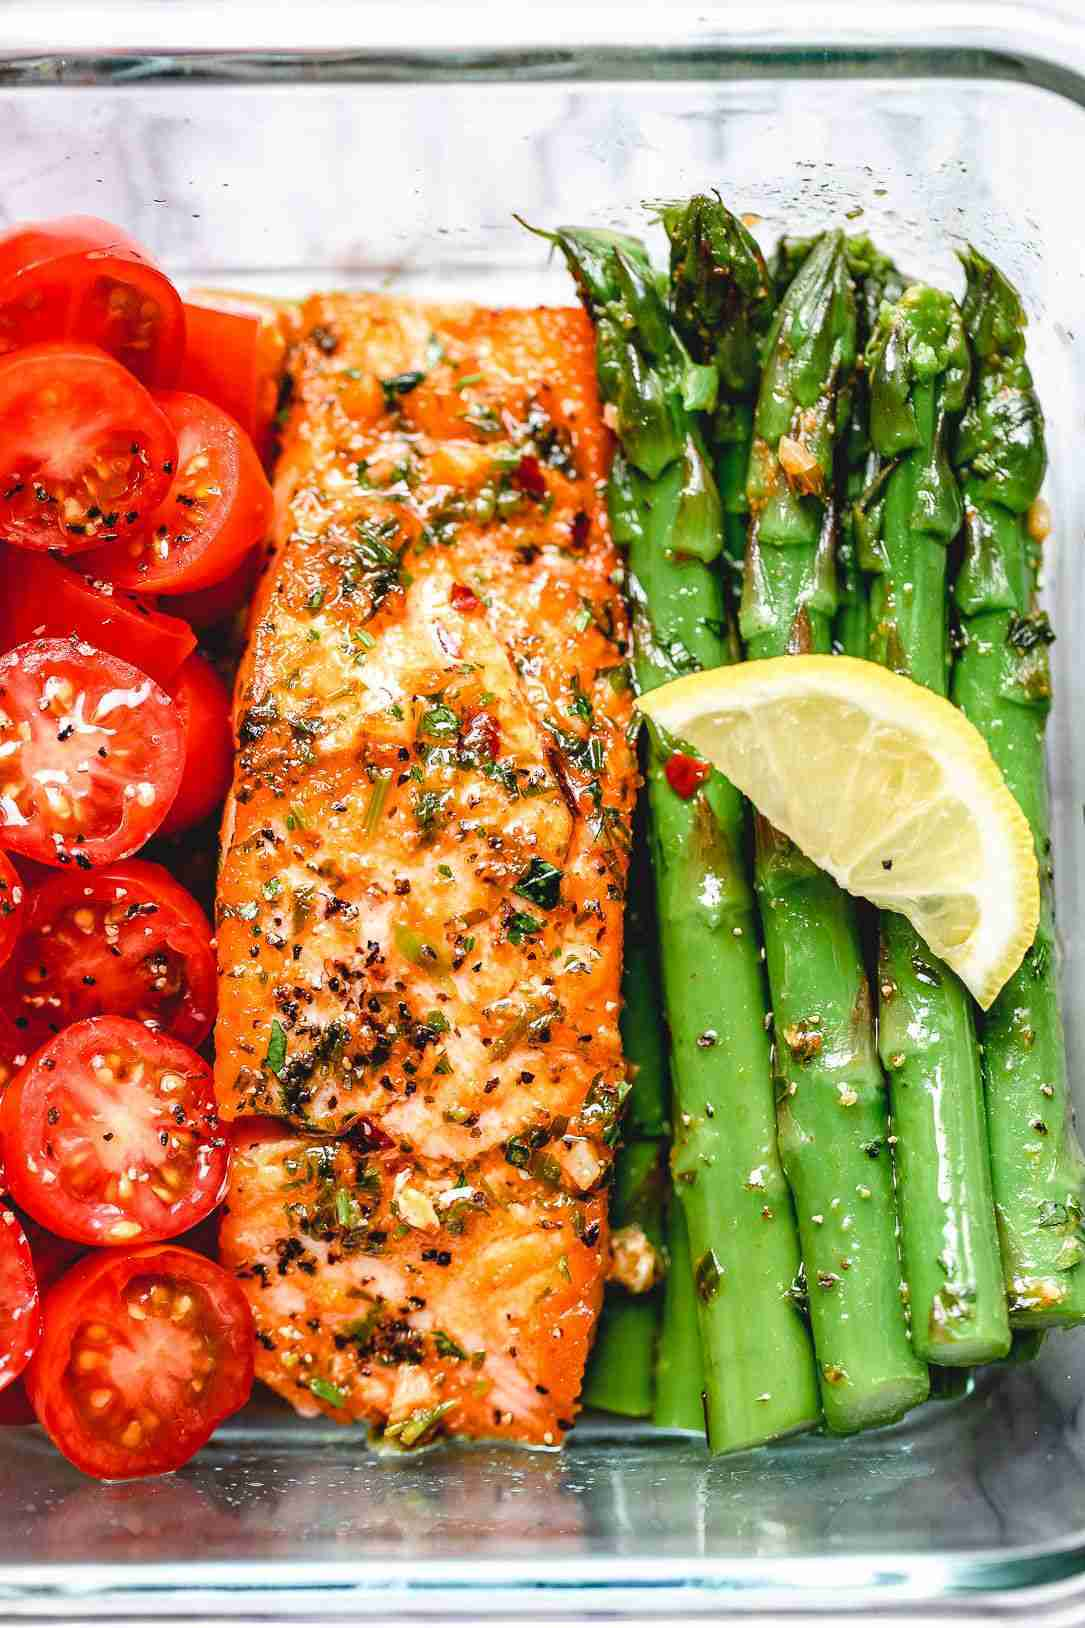 Meal-Prep Garlic Butter Salmon with Asparagus Recipe